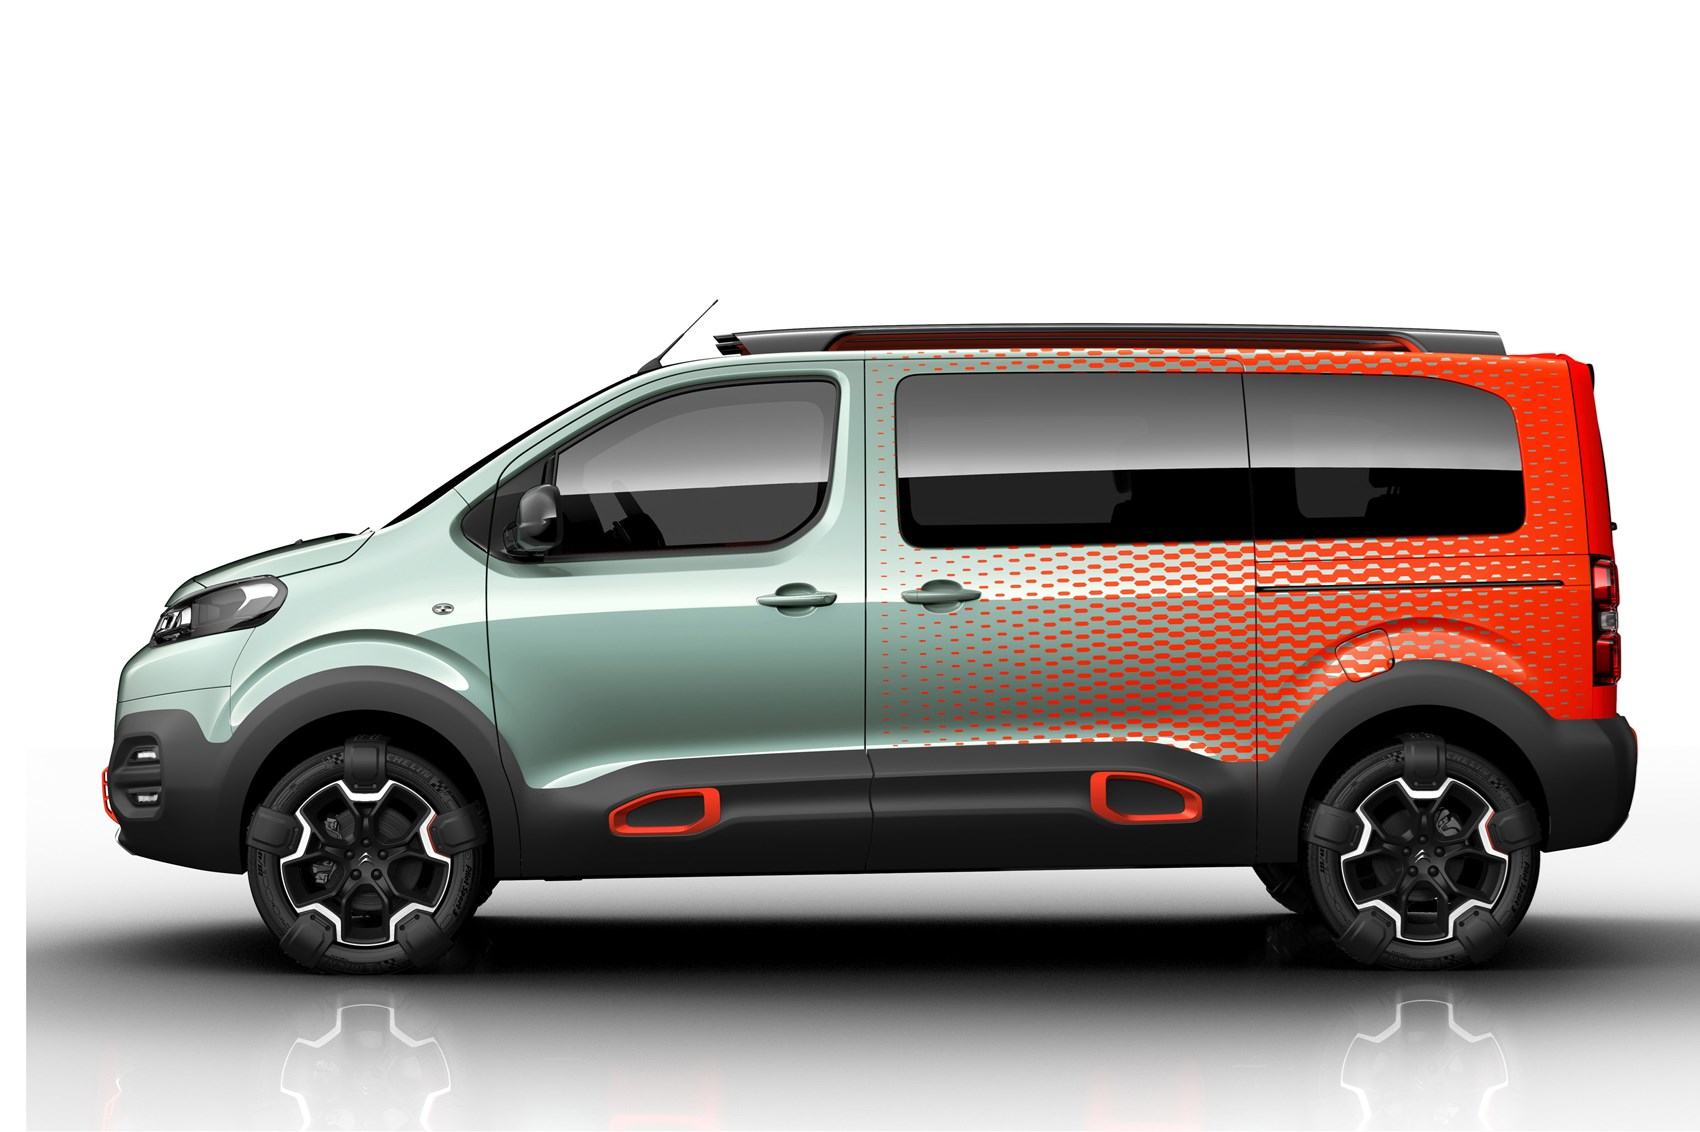 citroen spacetourer hyphen concept improbably named 4x4 mpv for geneva 2016 by car magazine. Black Bedroom Furniture Sets. Home Design Ideas